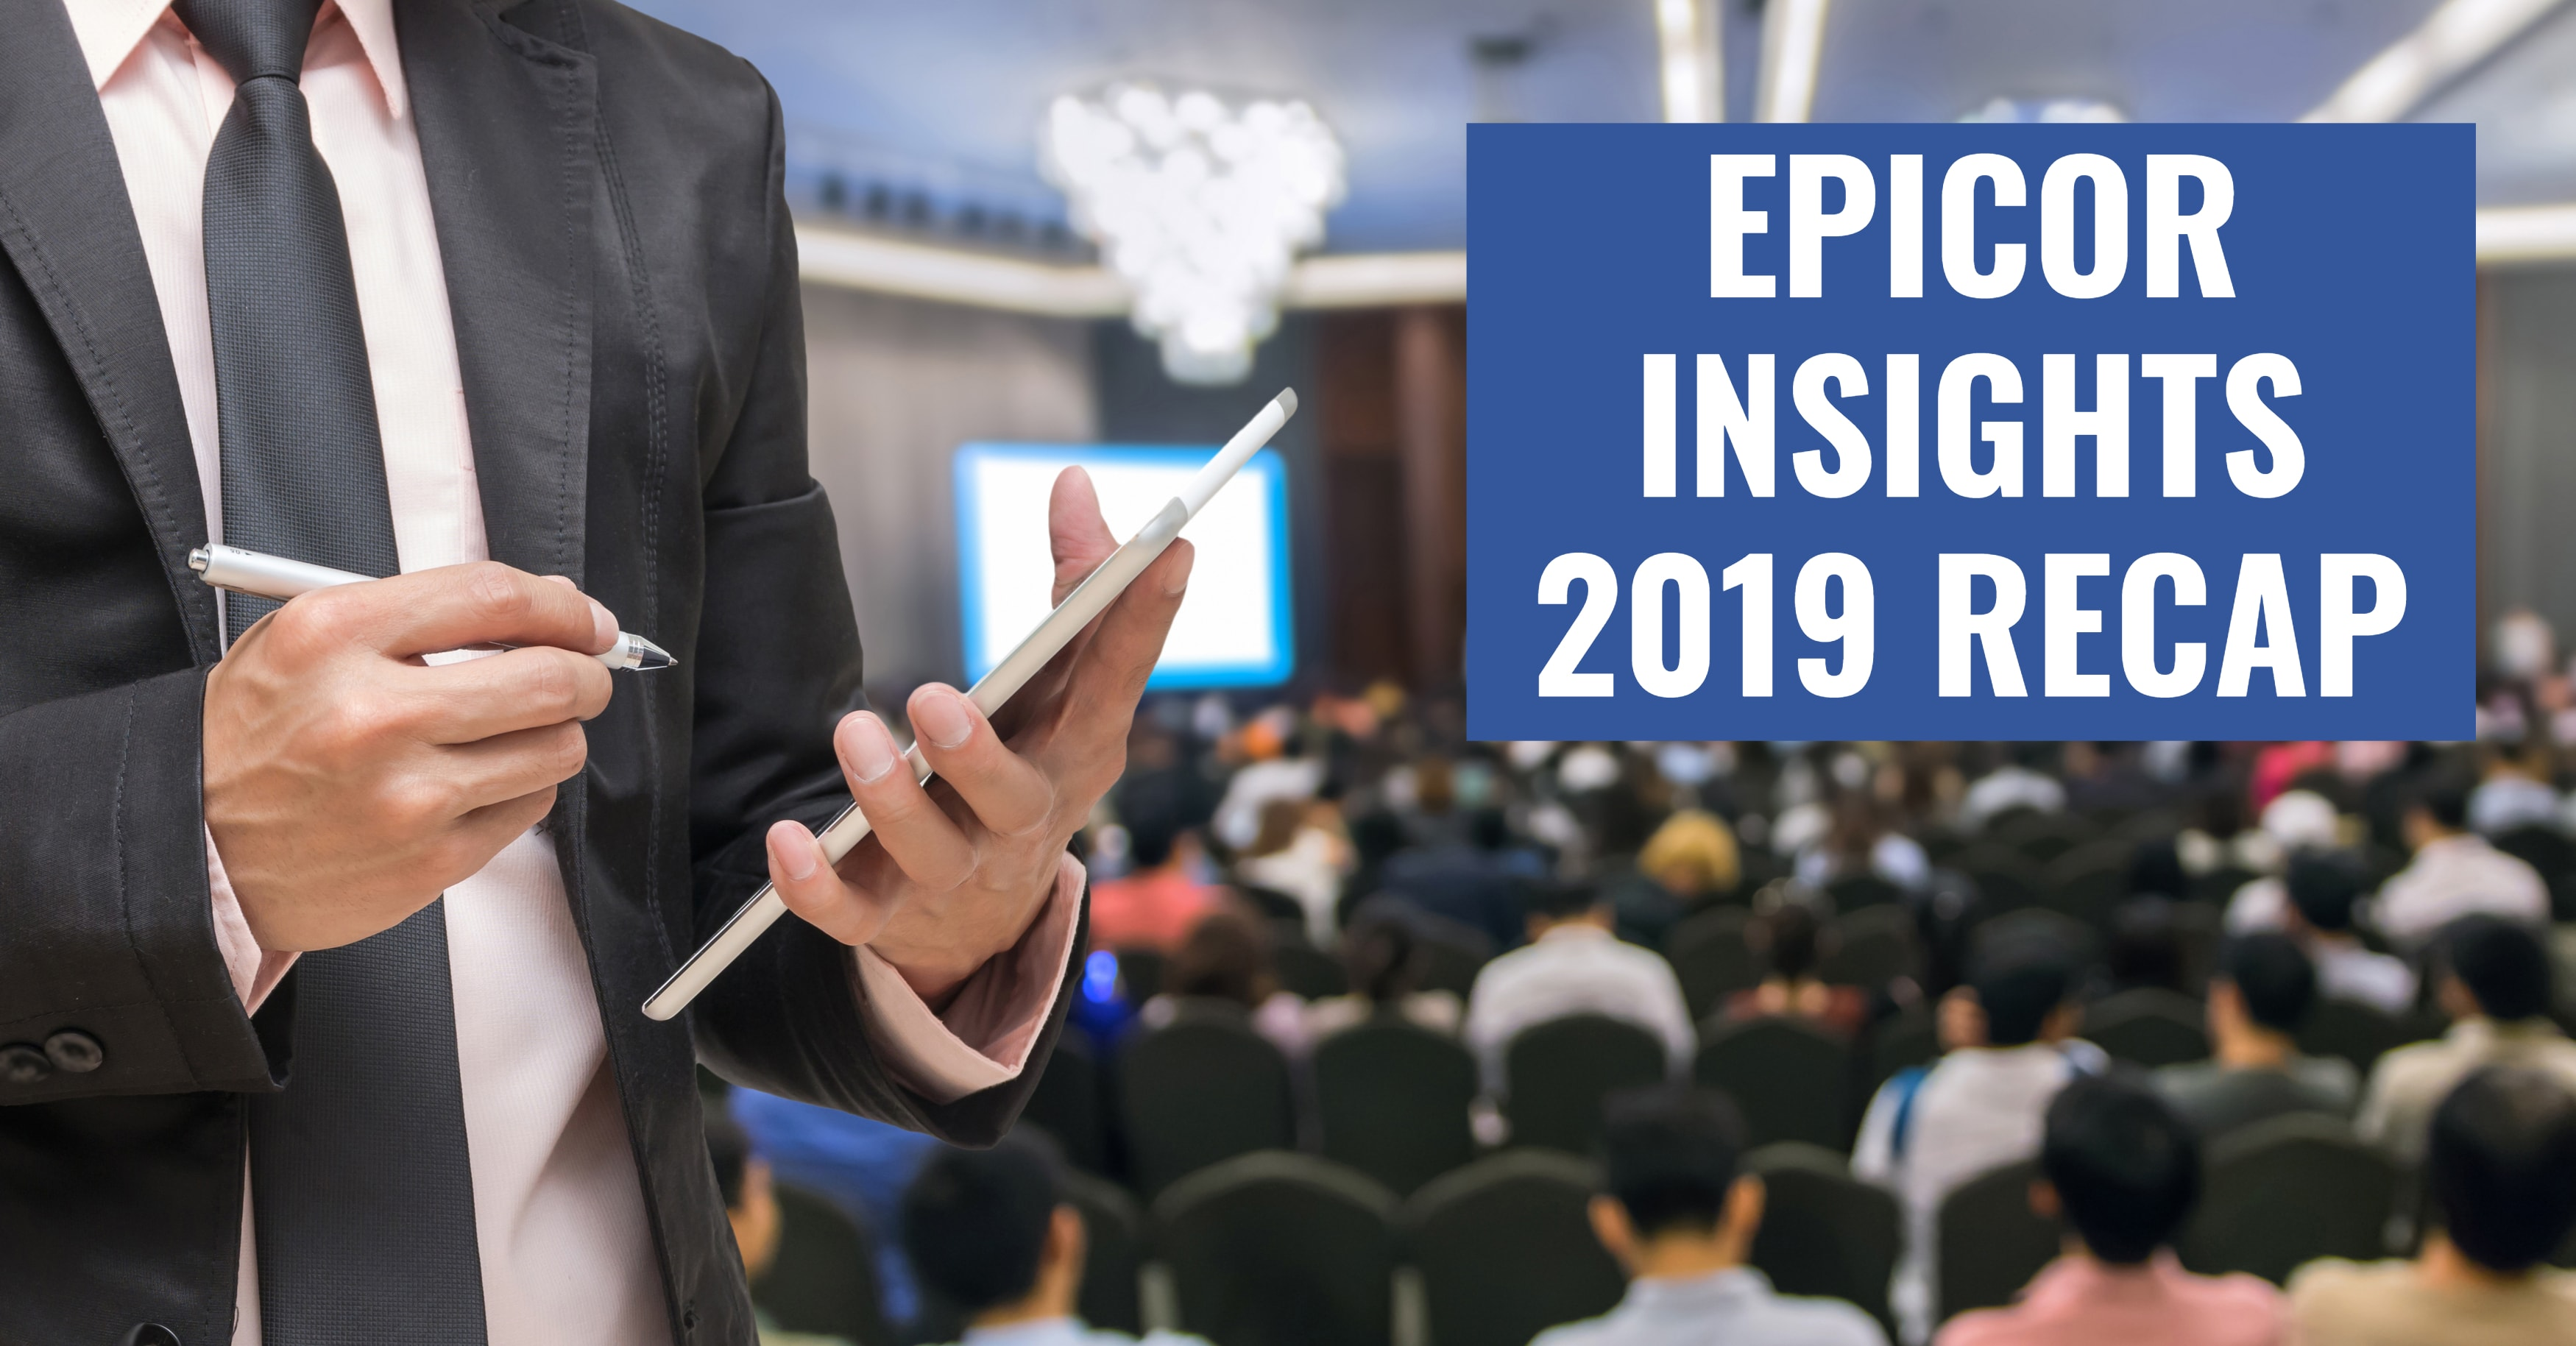 Epicor Insights 2019 Recap